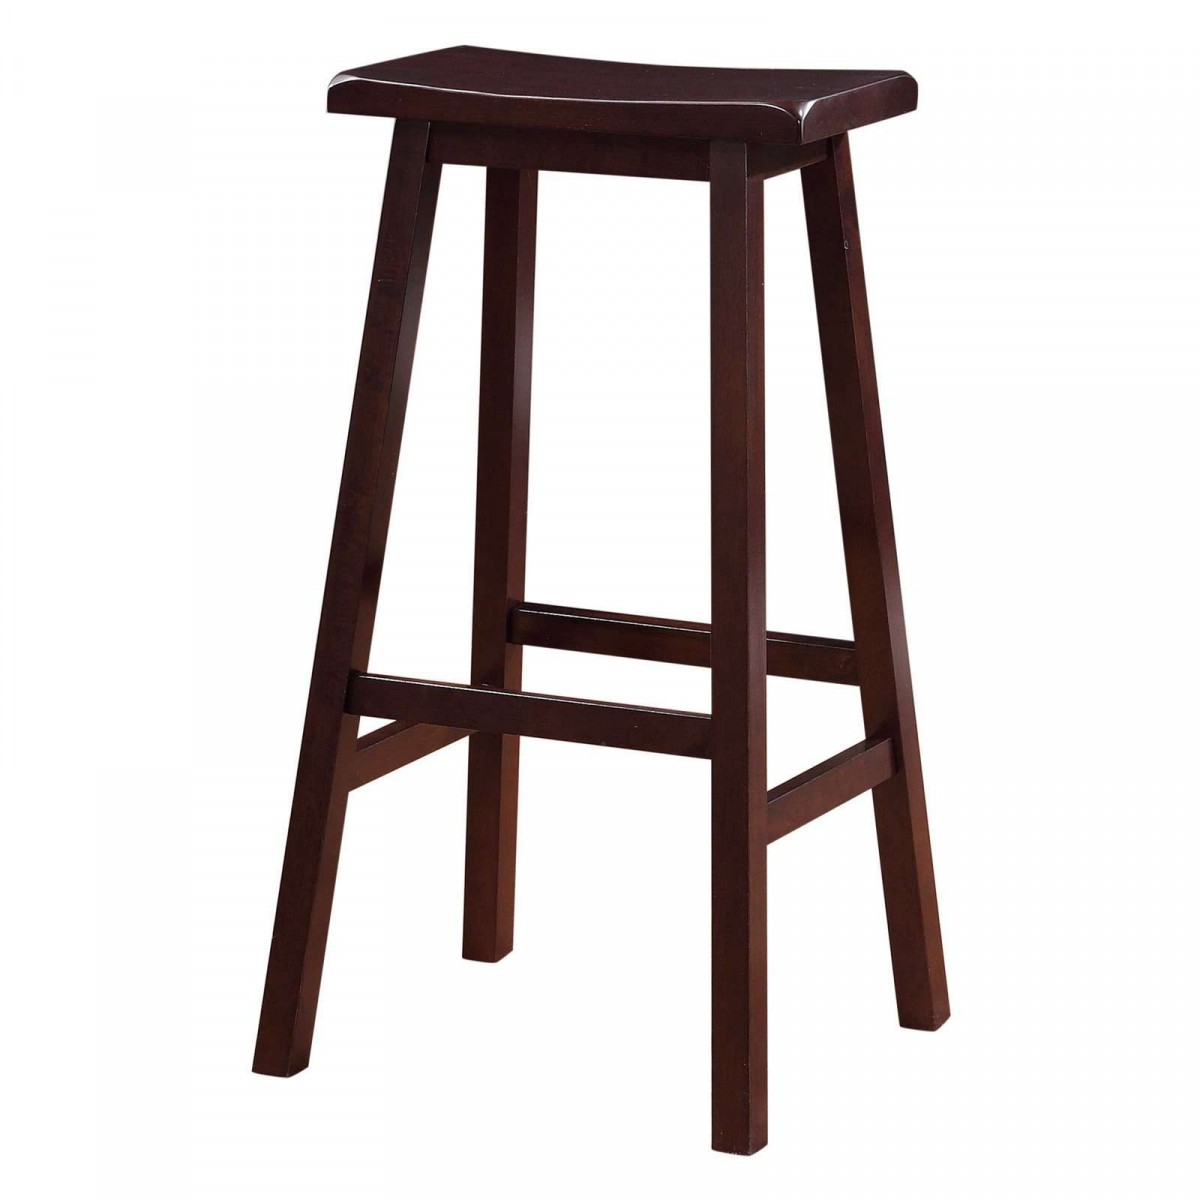 "Home Decor Products Inc: Linon Home Decor Products Inc. Dark Brown 29"" Saddle Stool"